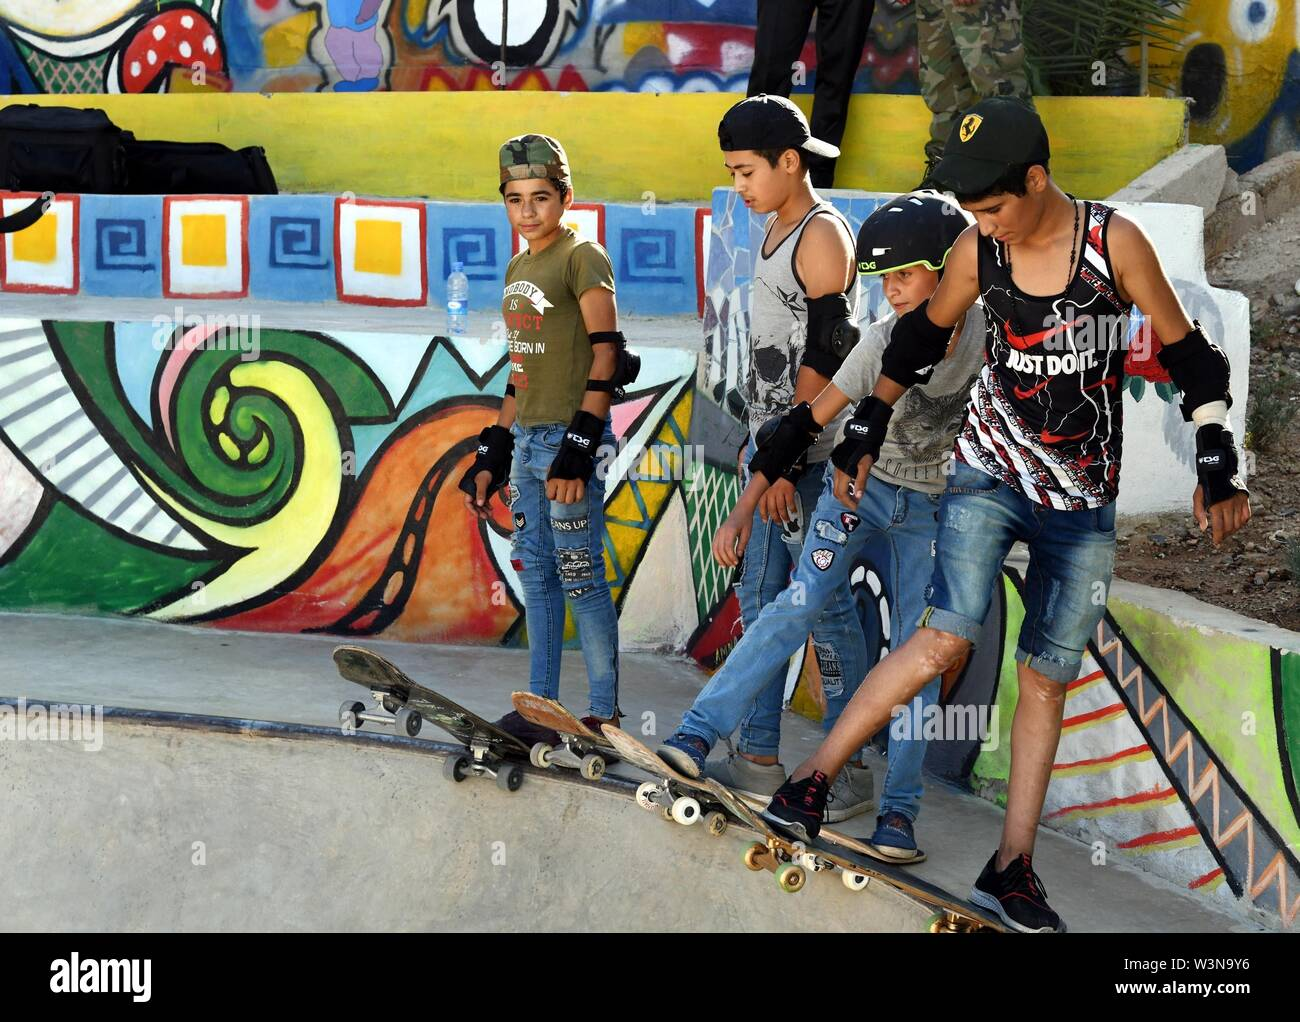 "(190717) -- DAMASCUS, July 17, 2019 (Xinhua) -- Boys skateboard during the opening of the first skatepark in Damascus, Syria, July 15, 2019. The skatepark was co-built by SOS Children's Villages in Syria, the German Skate Aid Foundation and Wonders Around the World, an international and independent non-profit organization. The park, which was officially opened on Monday, was completed in 26 days in an abandoned space close to a residential area that witnessed some acts of rebellion in the early years of the eight-year war in Syria. TO GO WITH ""Feature: First skatepark adds new dimension to Syr Stock Photo"